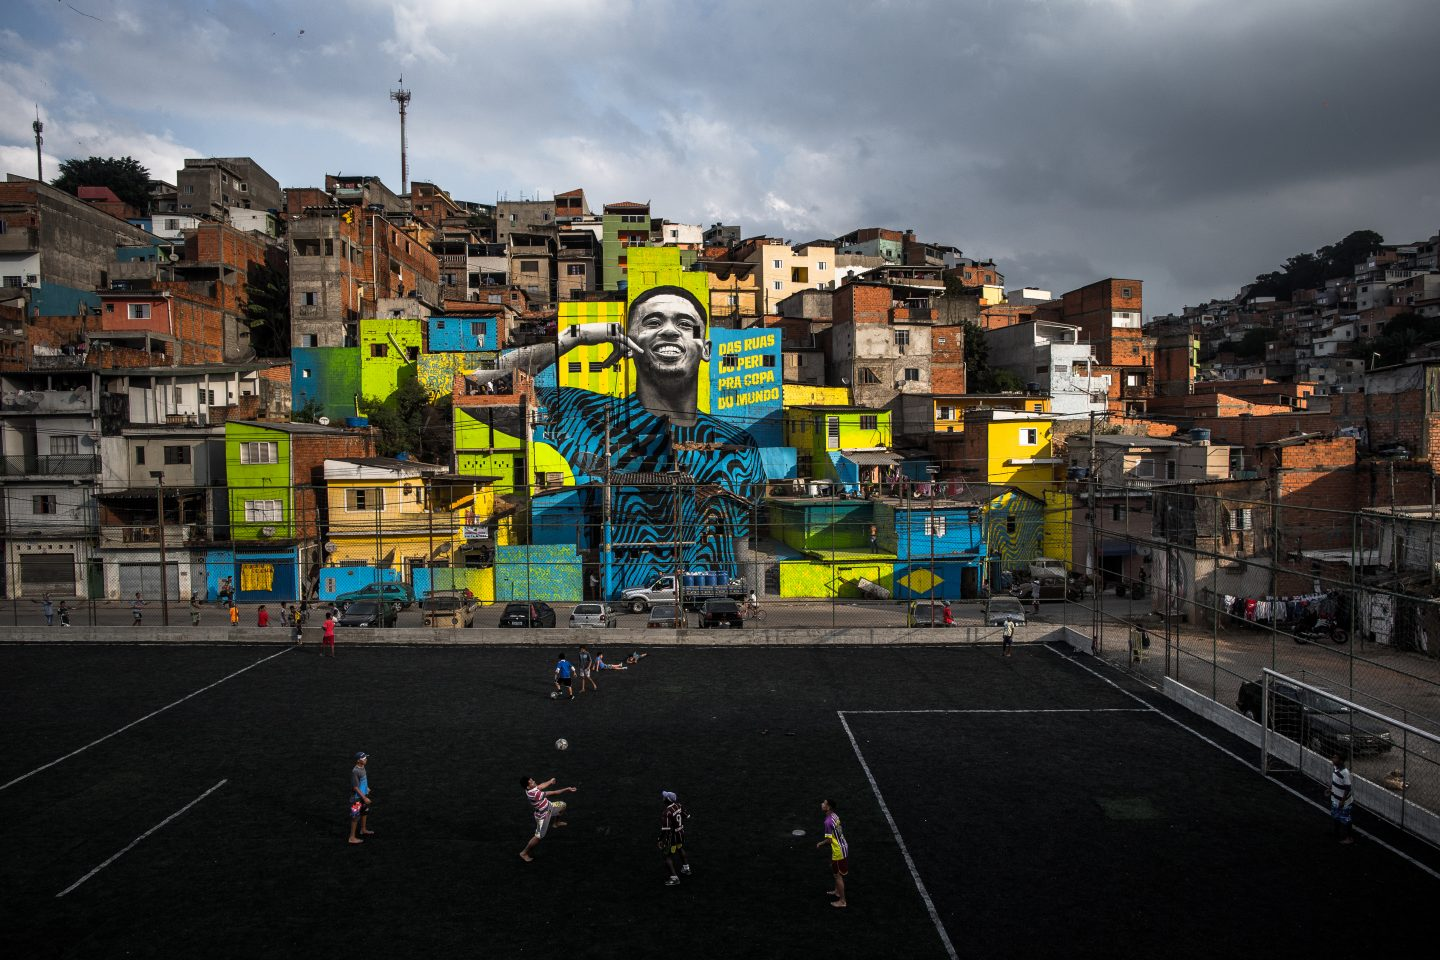 A mural fills several houses in the neighborhood with a portrait of Gabriel Jesus in Sao Paulo. mural, Brazil, Gabriel Jesus, soccer